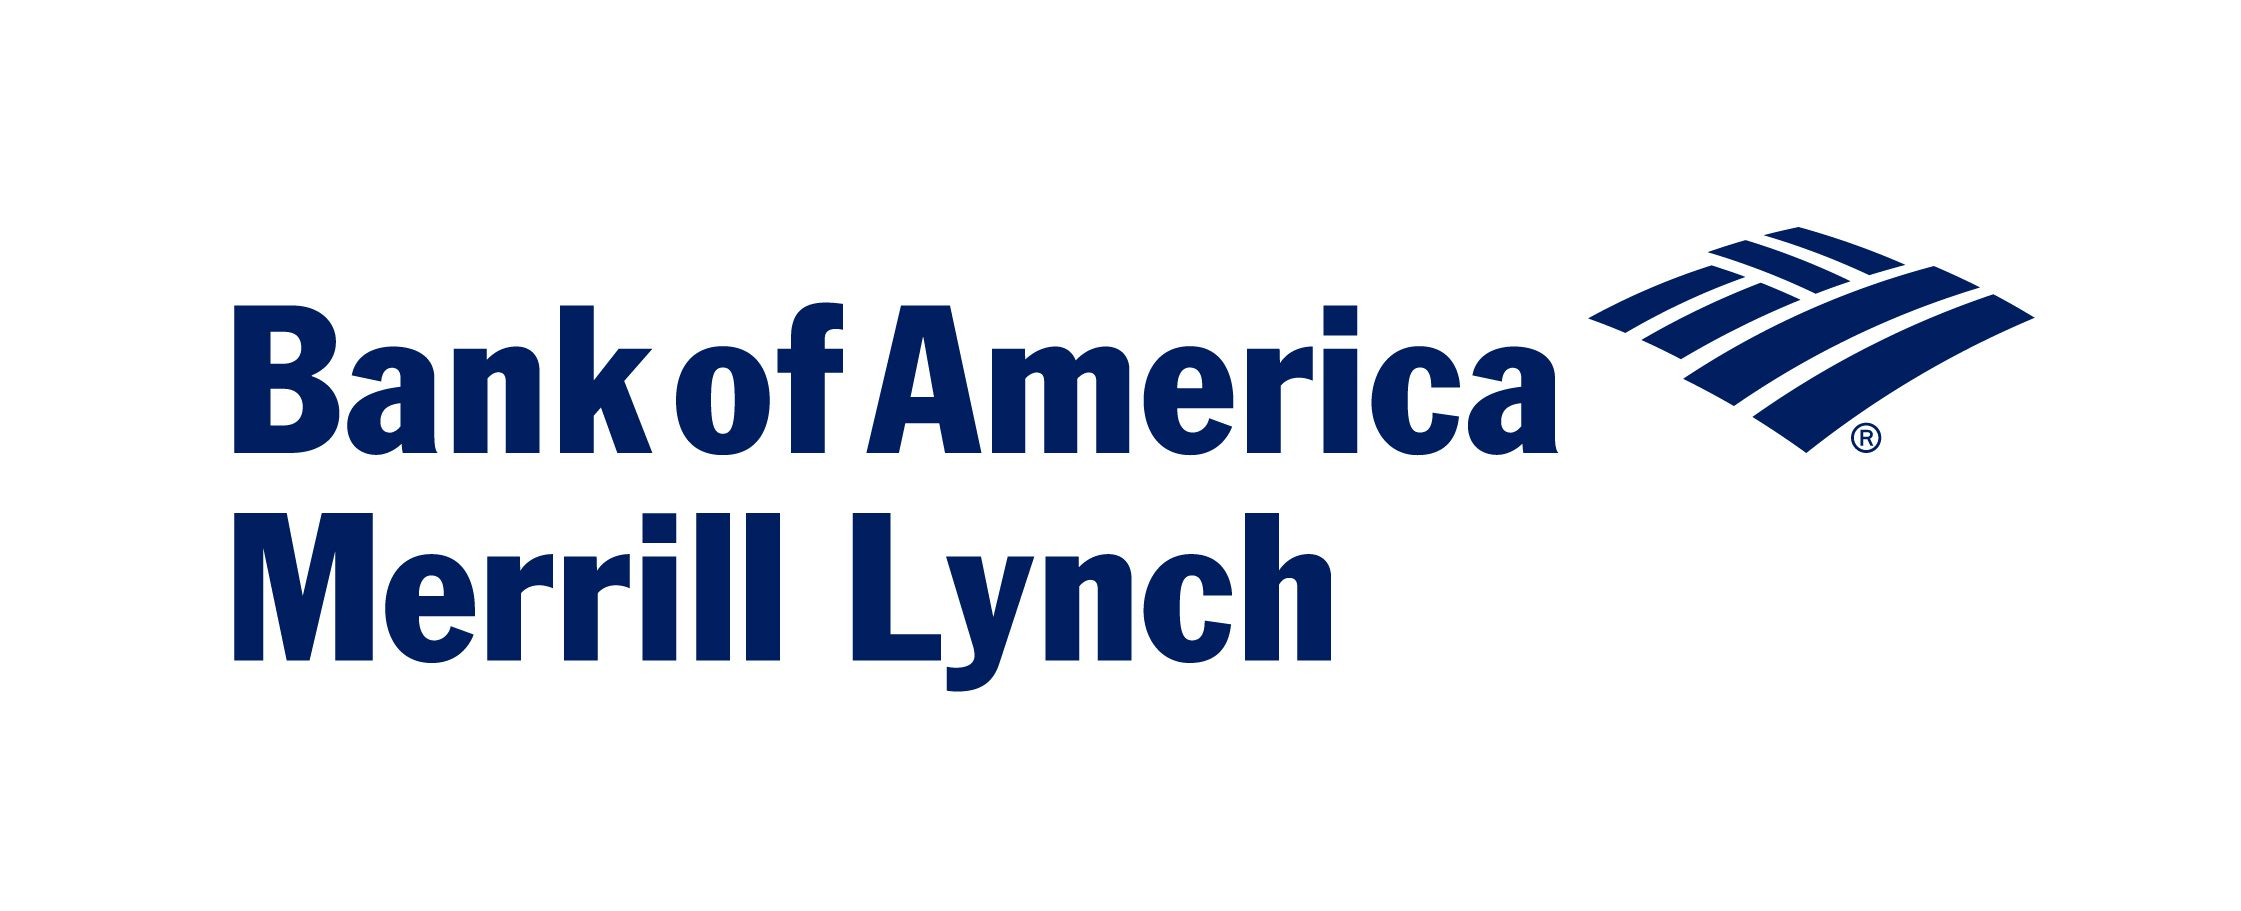 Bank of America Merrill Lynch South Africa Global Banking